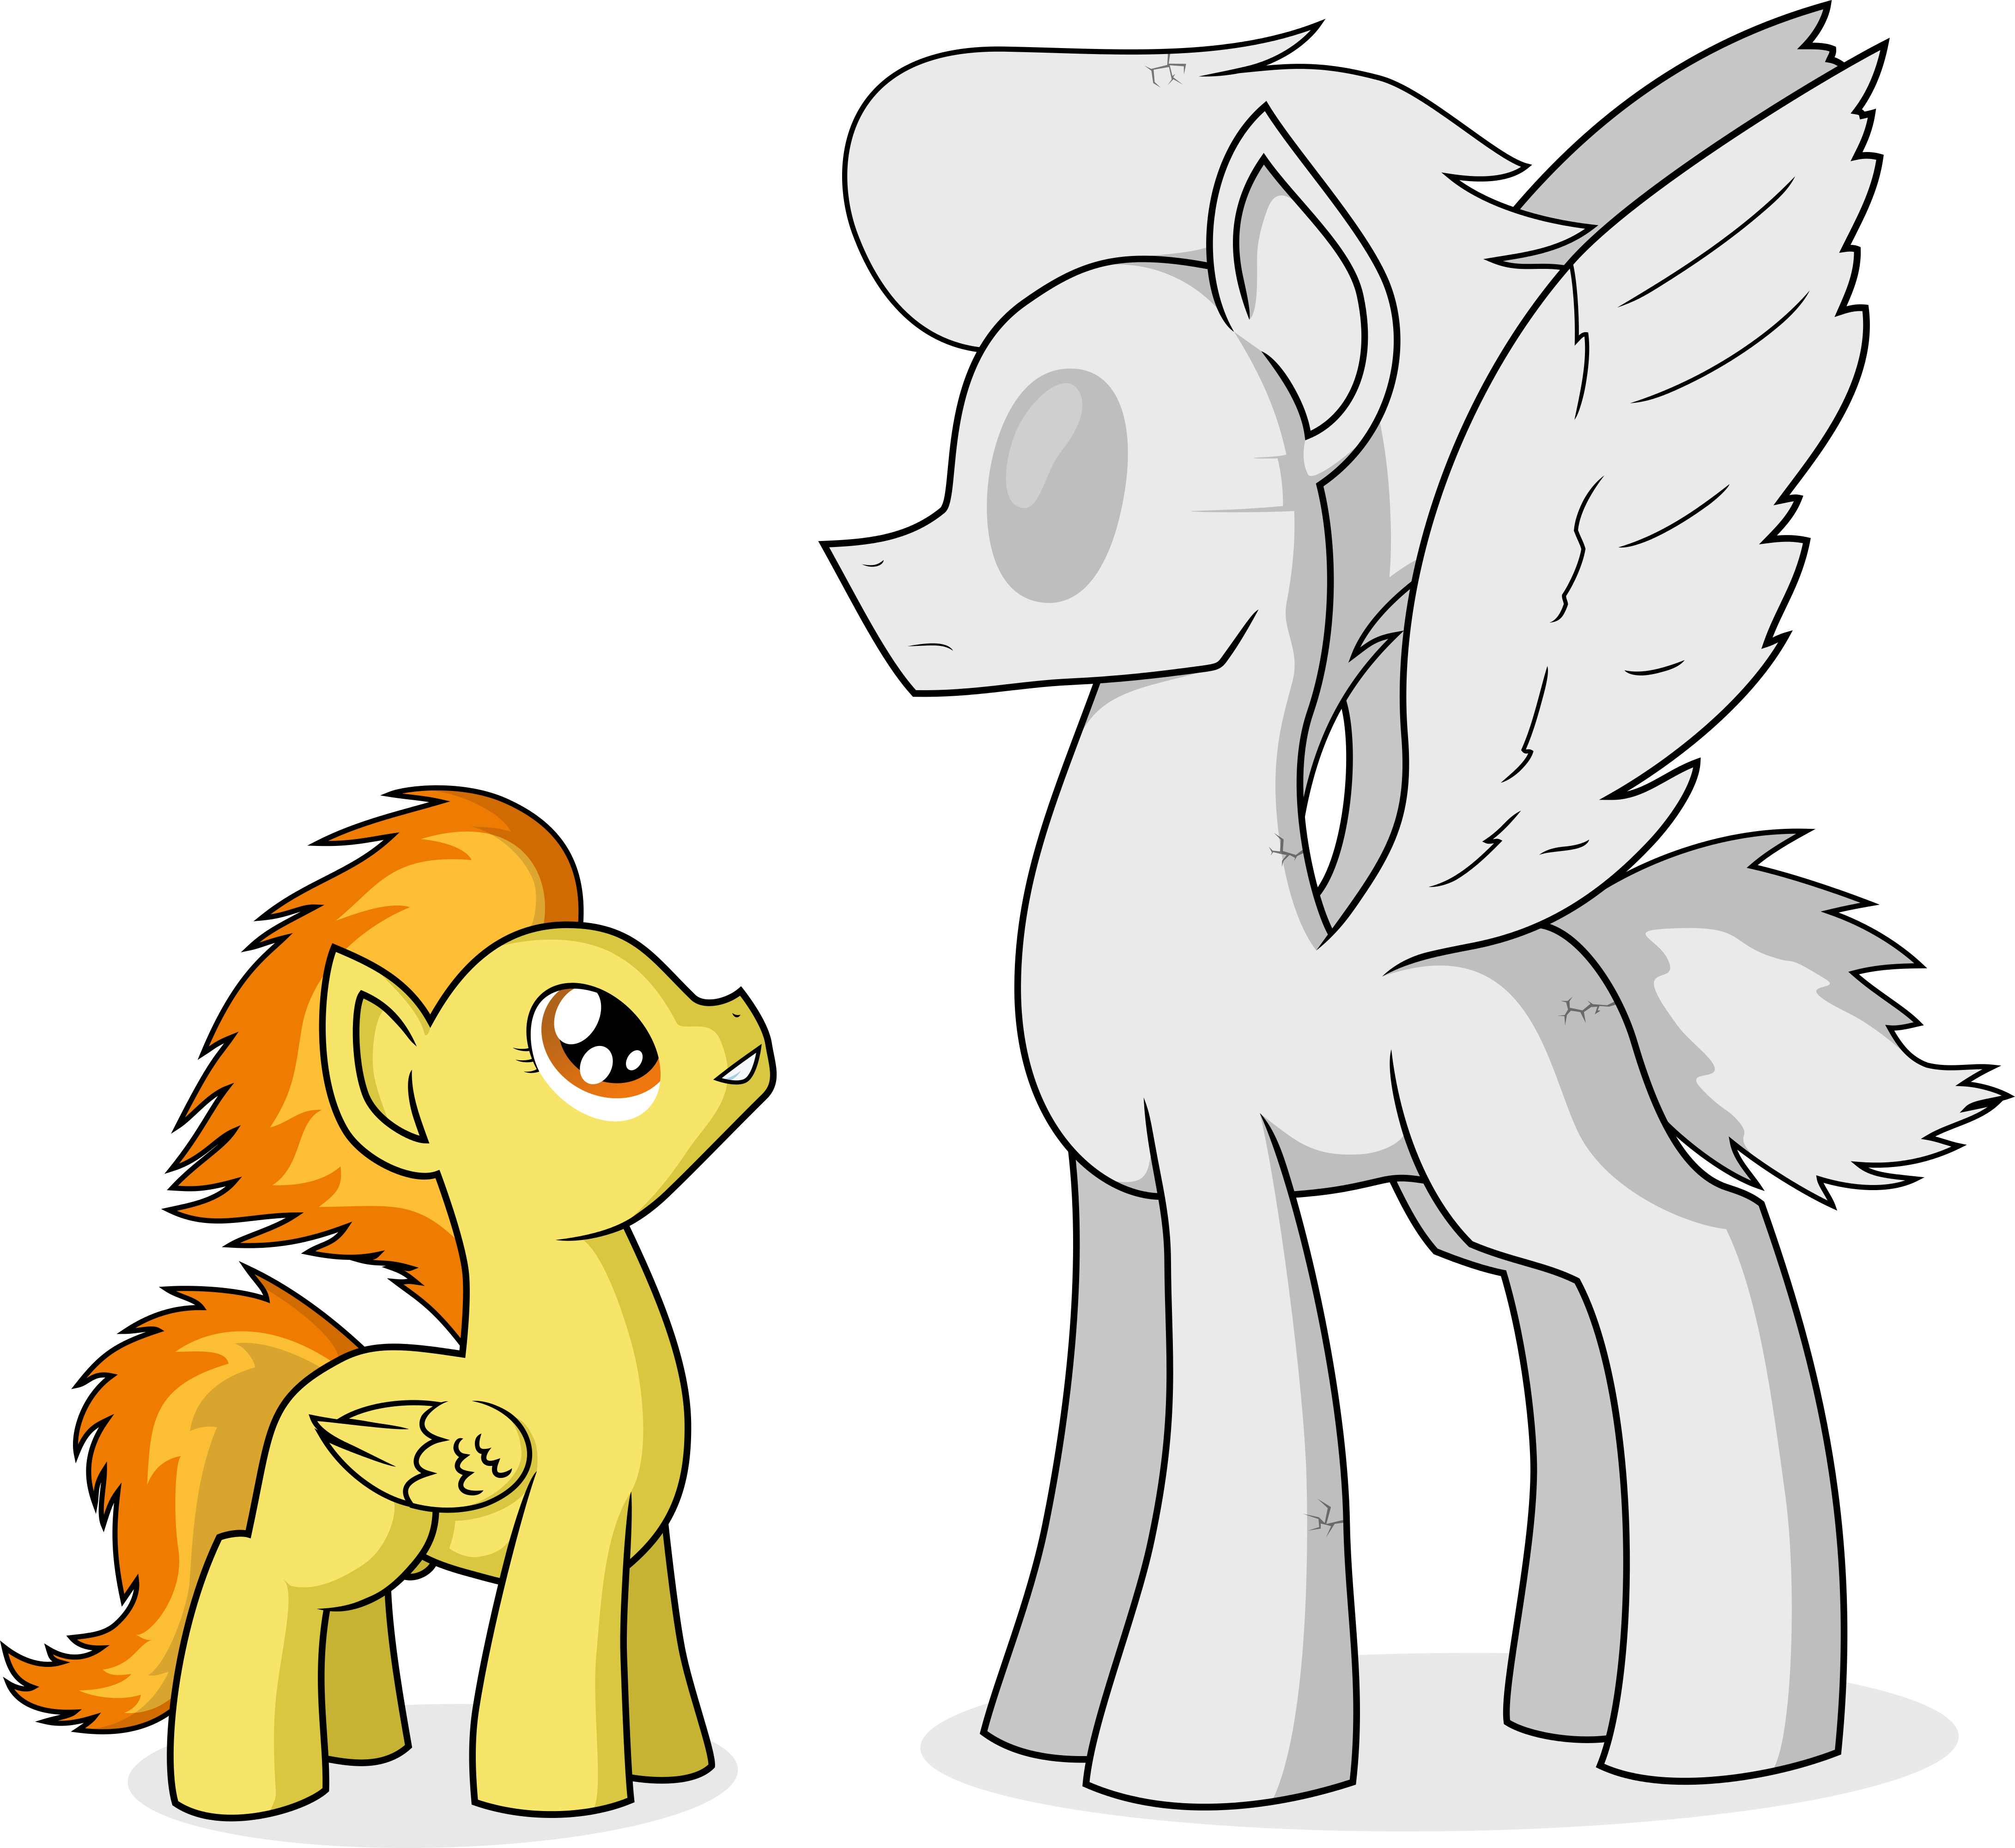 filly_s_dream_by_esc54-d7lisa3.png